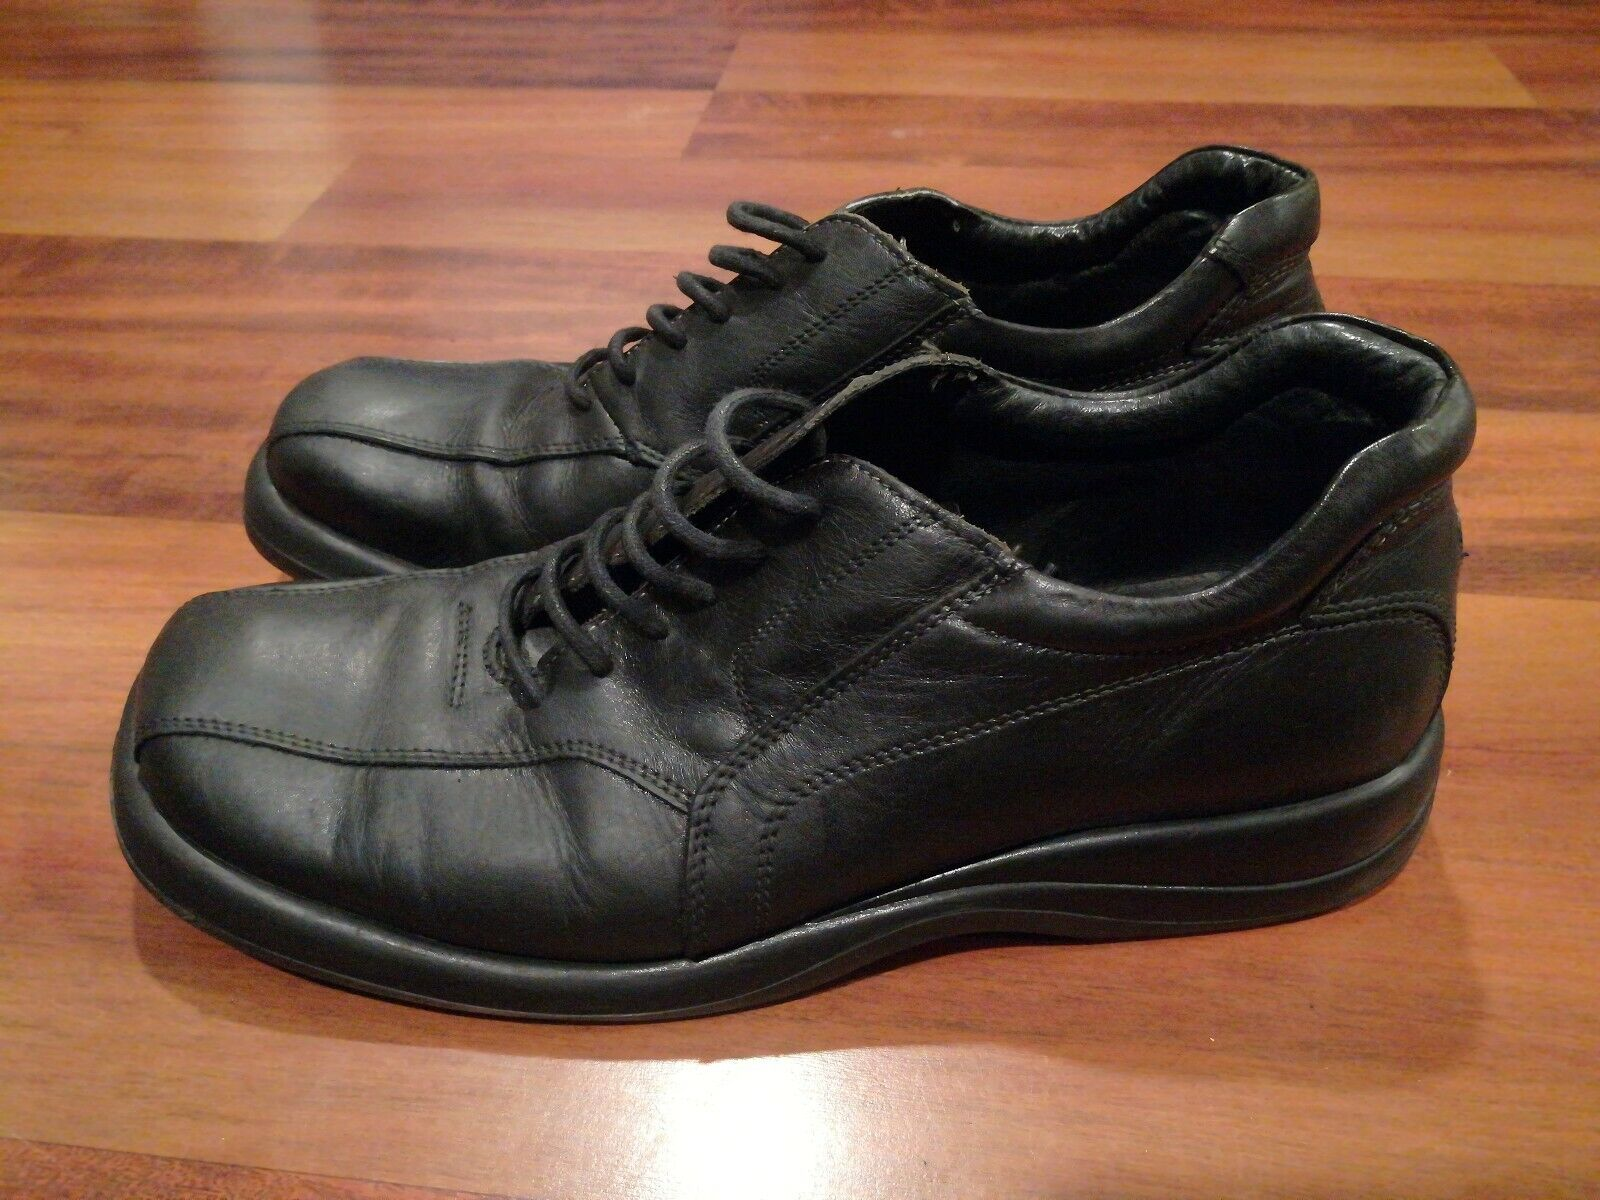 Kenneth Cole Reaction Mens Oxford Dress Shoes Square Toe Black Sz 11 Made Italy